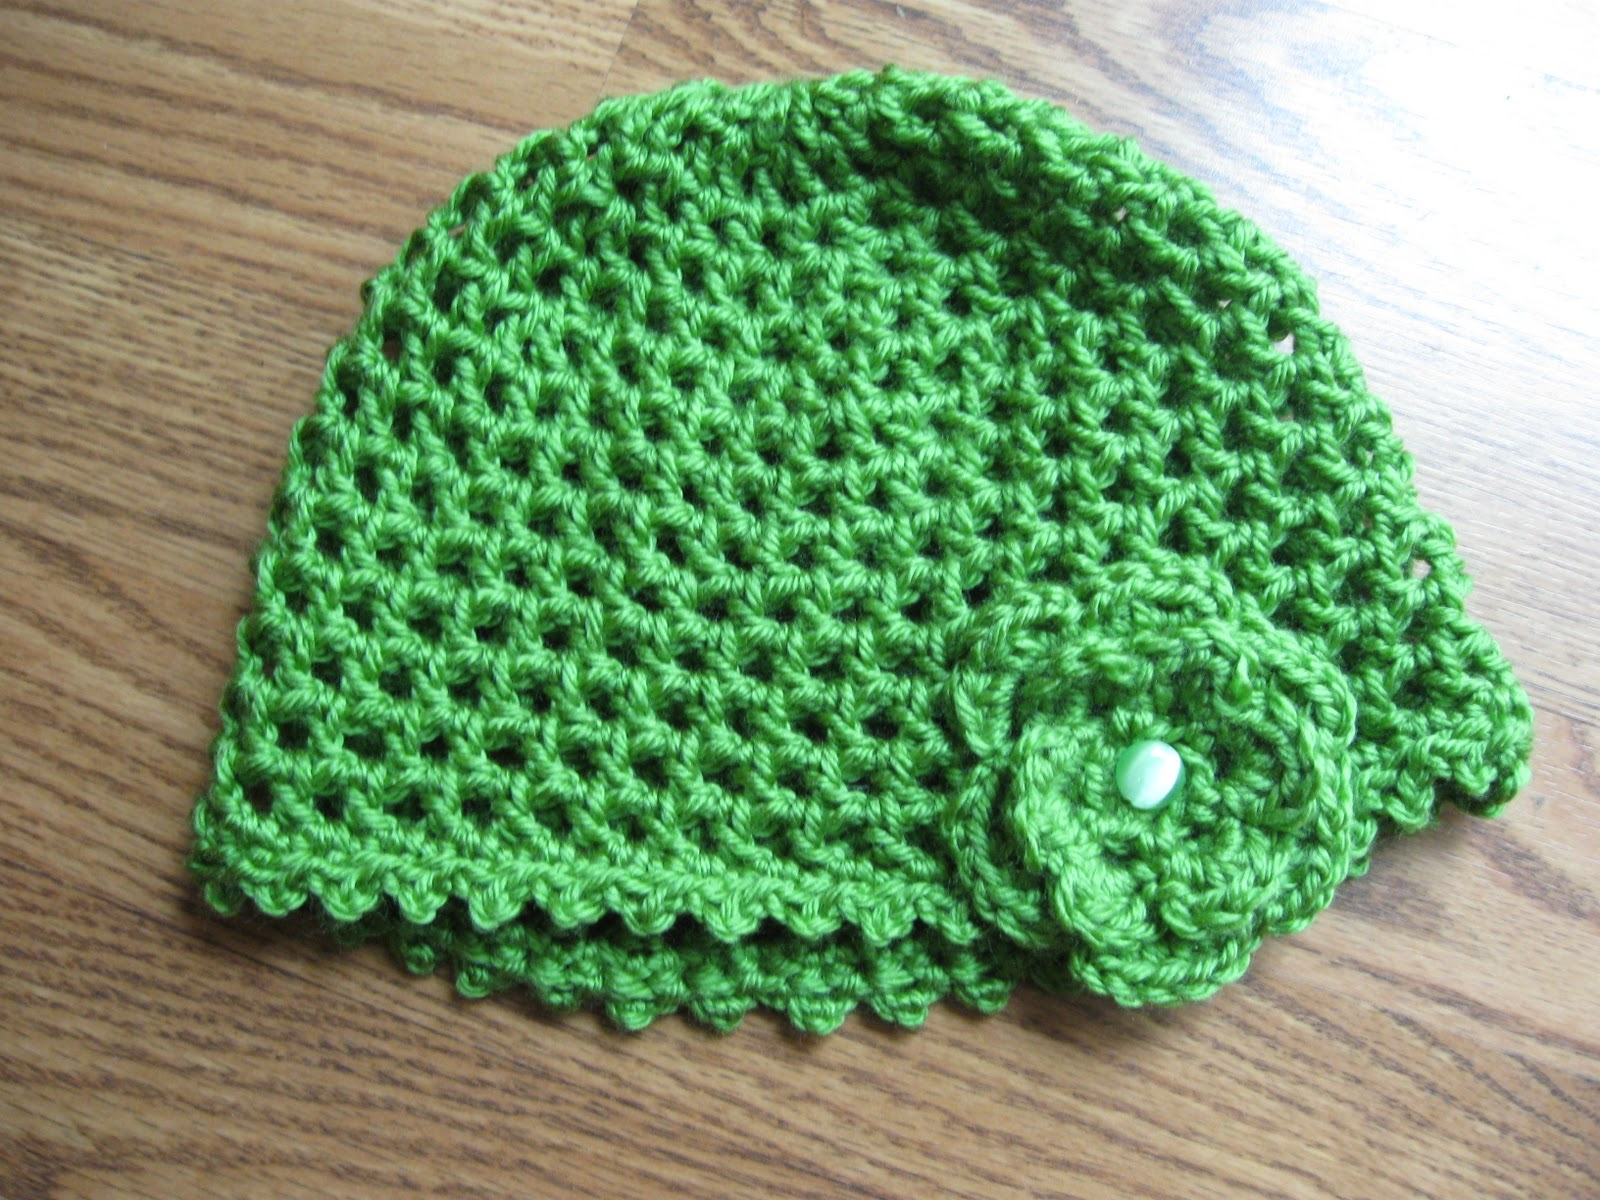 Crochet Knot : Celtic Knot Crochet: Photos of Crochet Projects